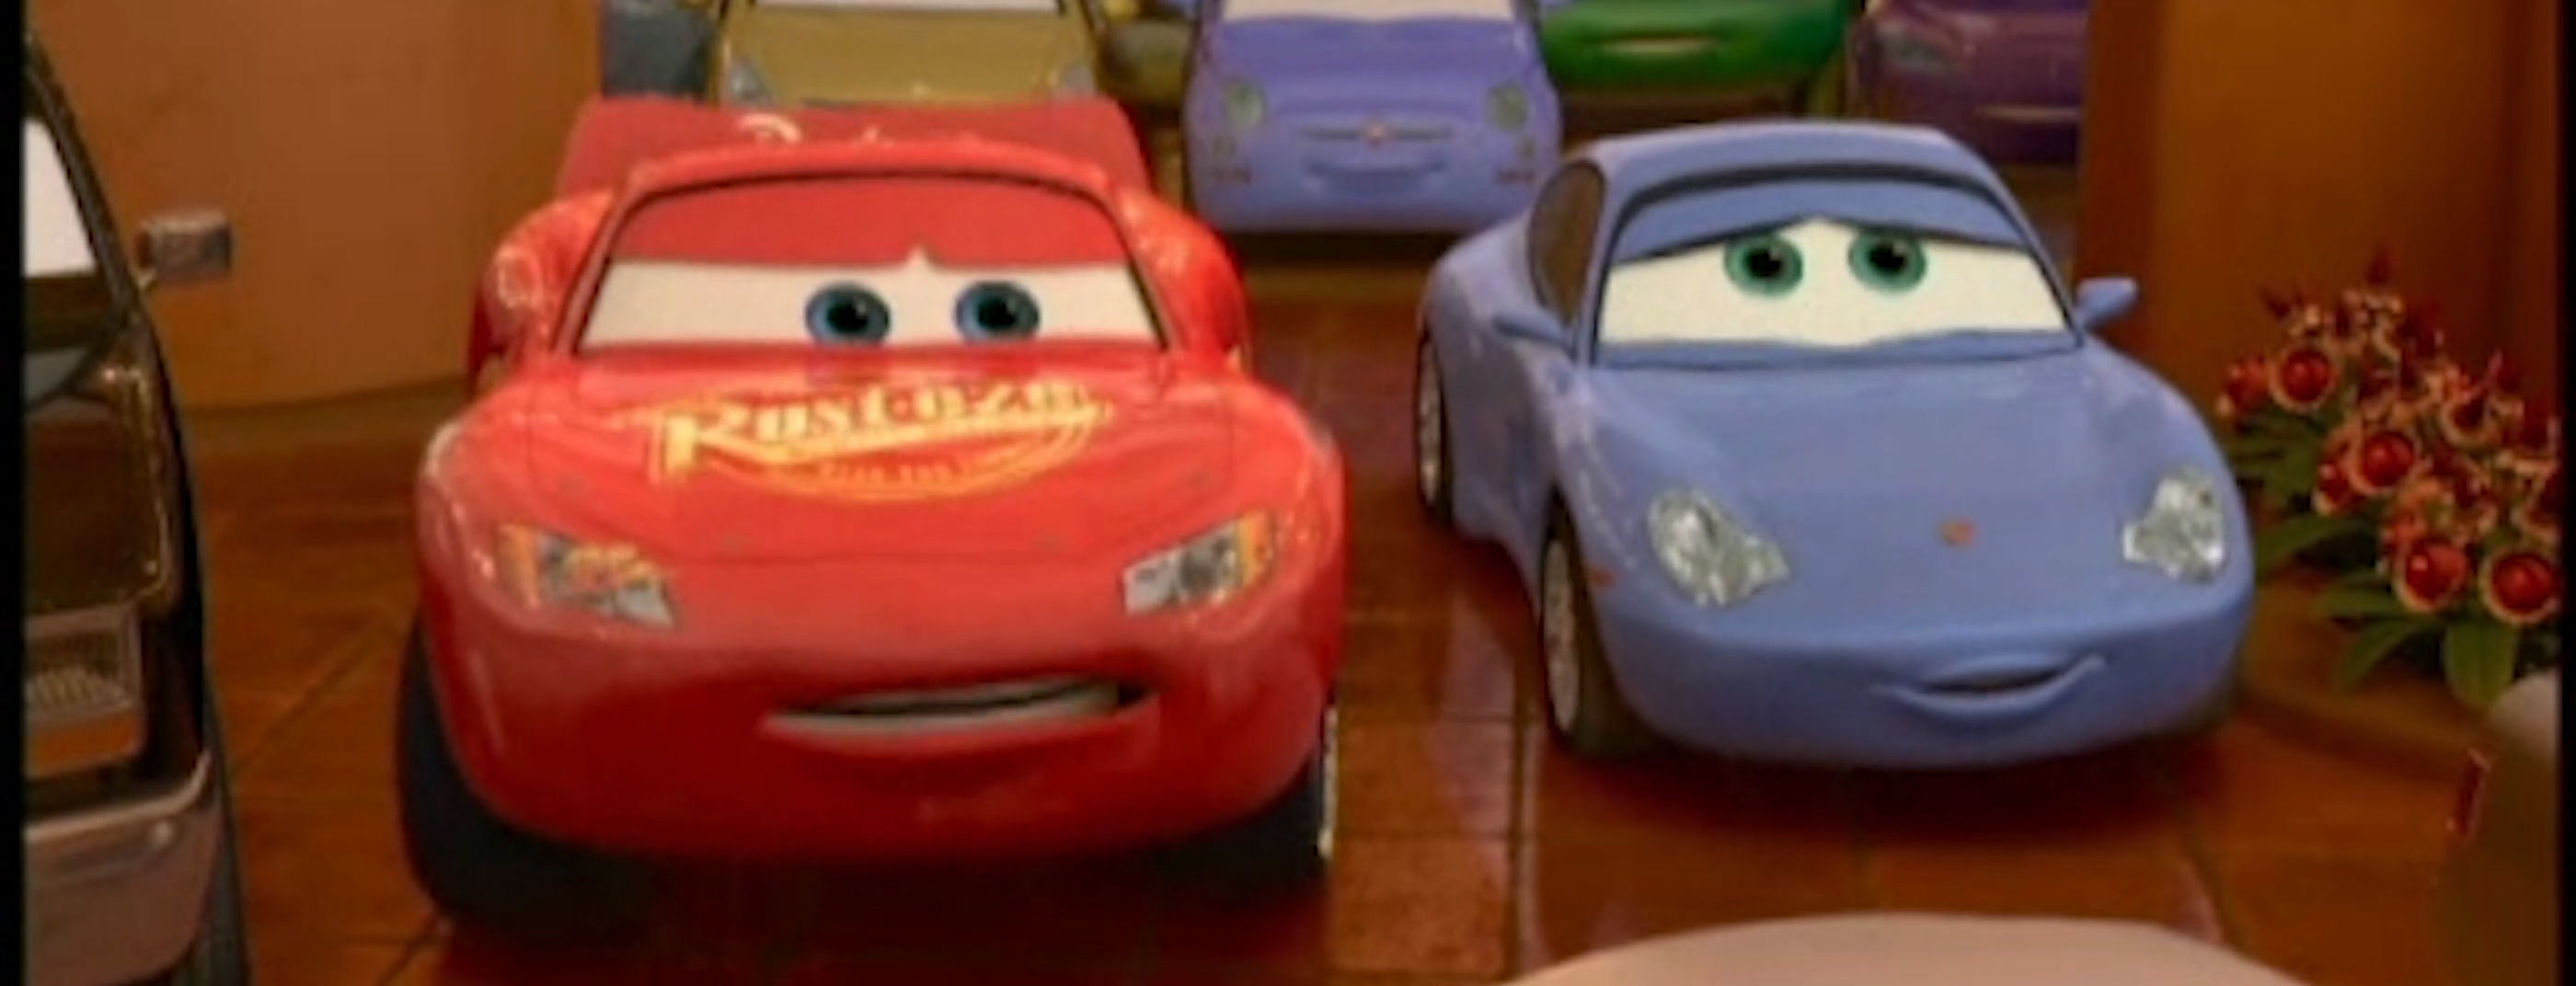 Deal Me In - Cars 2